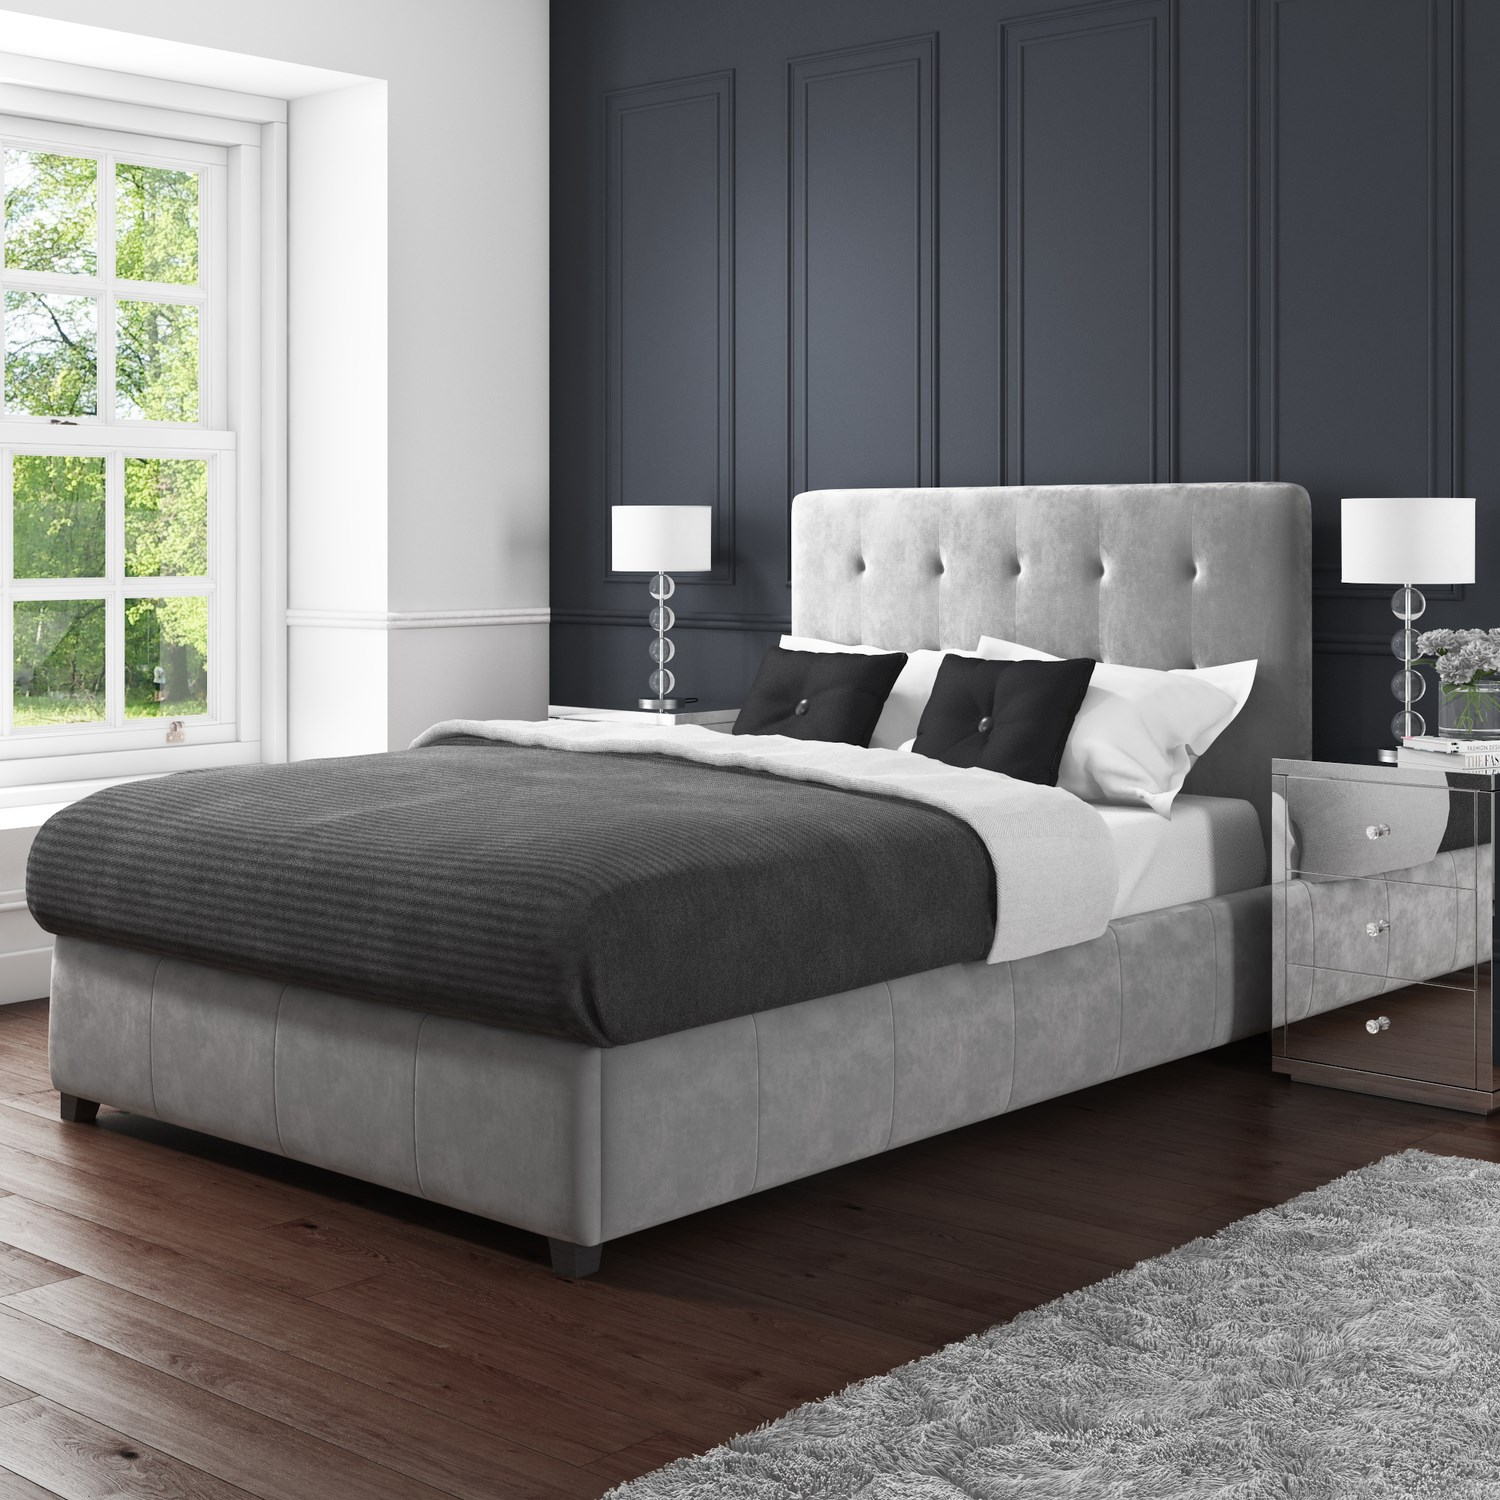 Admirable Details About Grey Velvet King Size Ottoman Storage Bed Safina Range Pabps2019 Chair Design Images Pabps2019Com